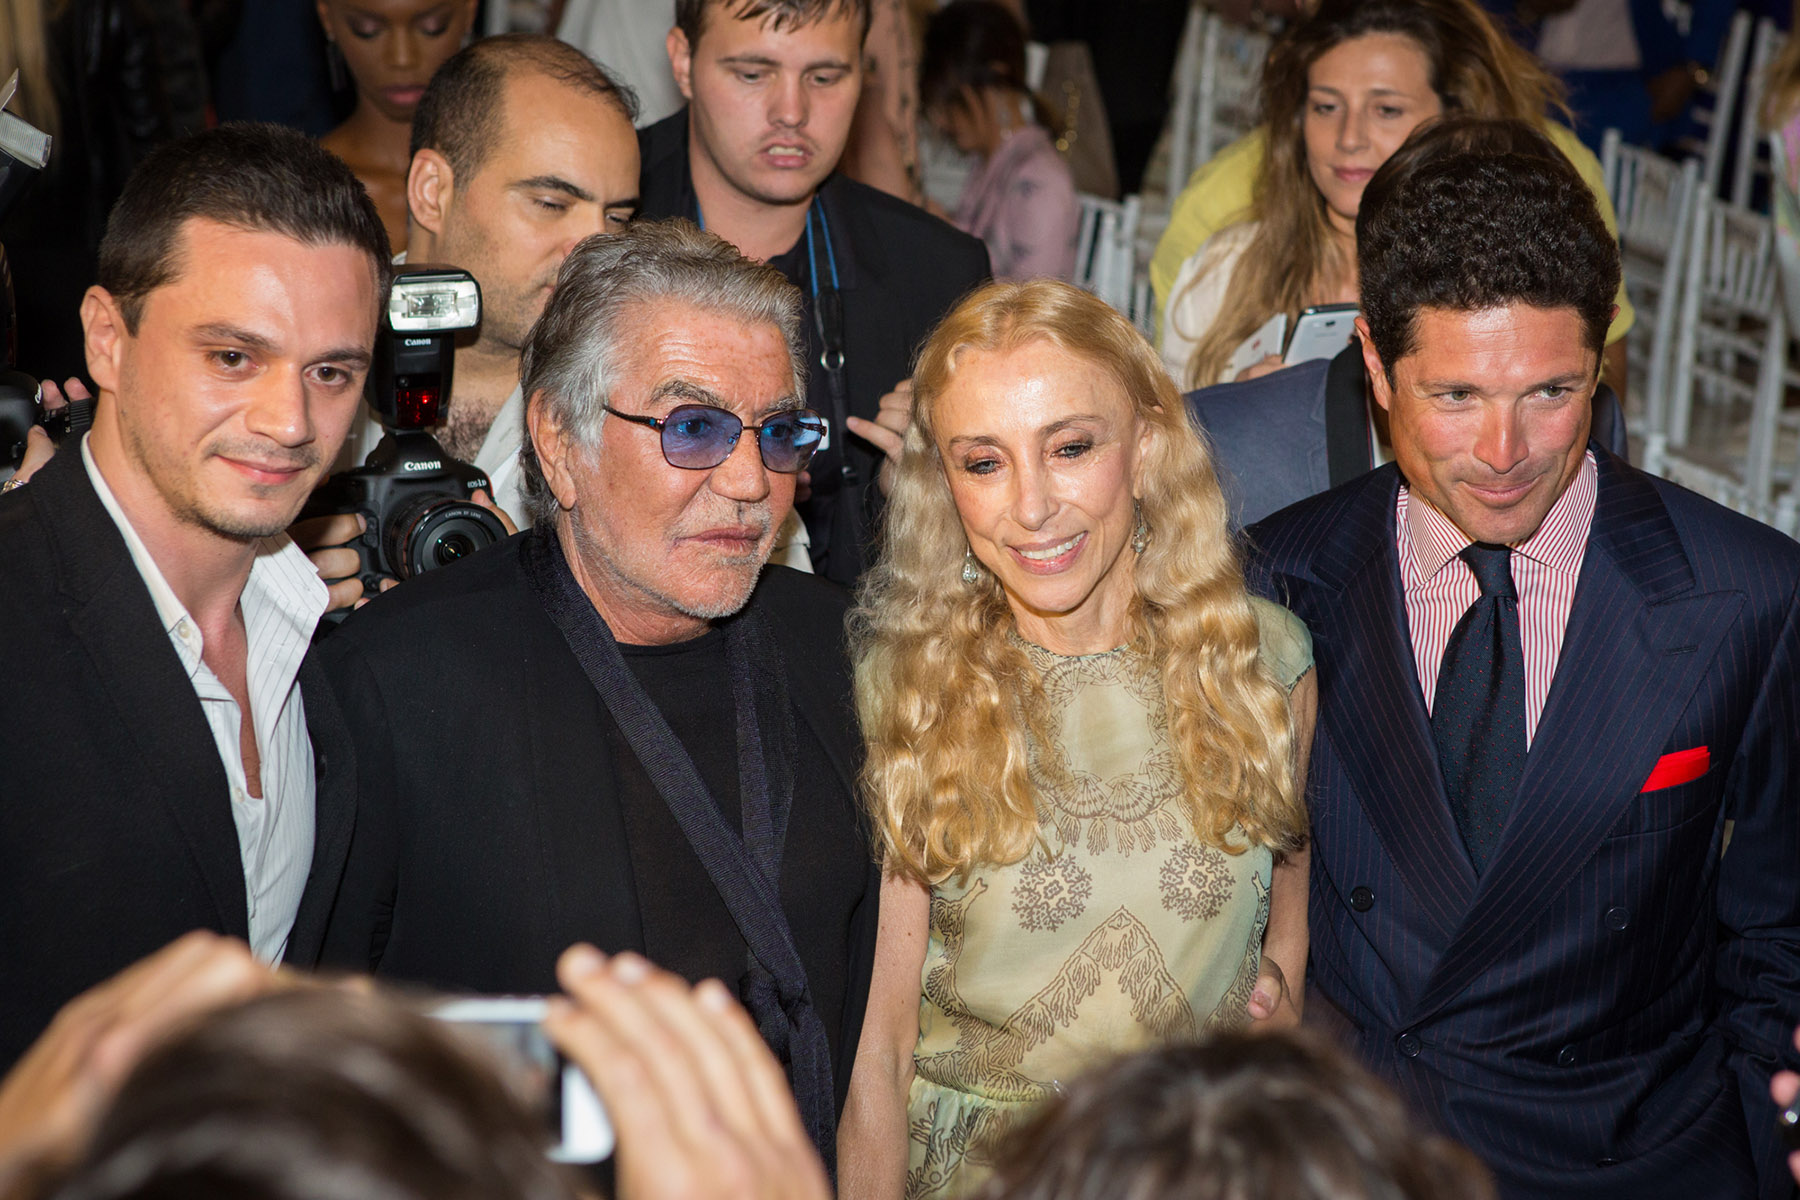 Vogue Italia's editor in chief Franca Sozzani at the Vogue Fashion Show by Loesje Kessels Fashion Photographer Dubai